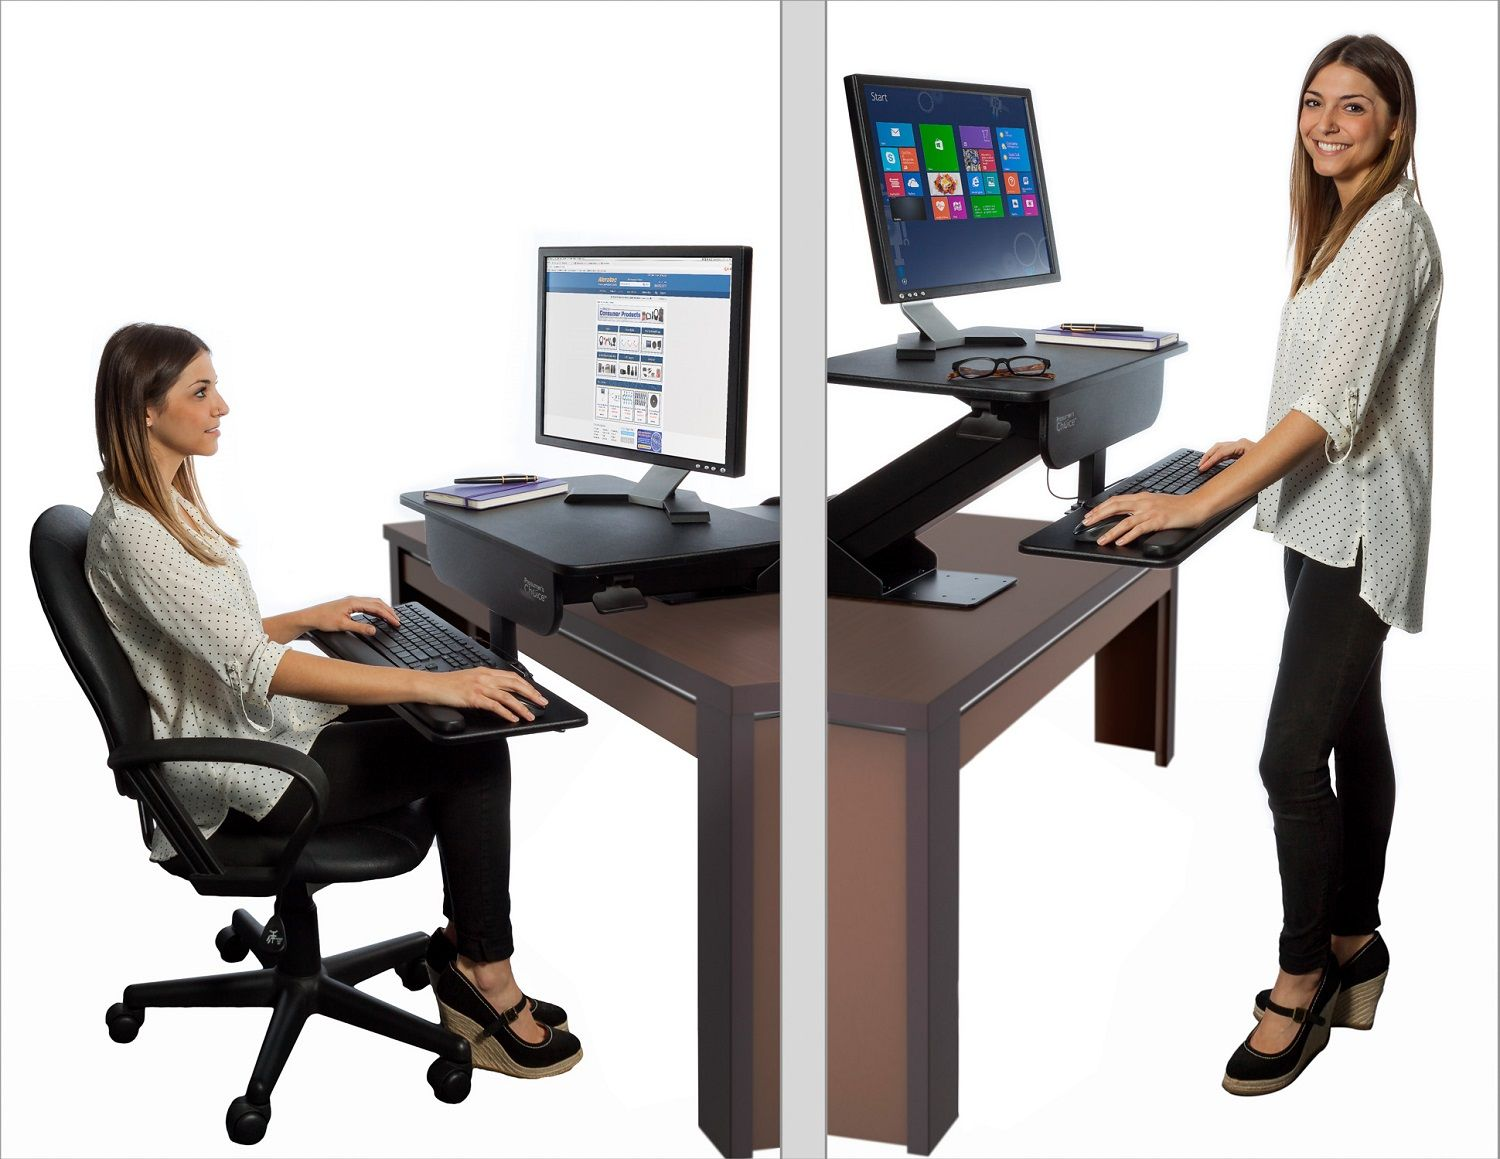 Adjustable Height Gas Spring Easy Lift Standing Desk Sit Stand Up Desk Computer Workstat Height Adjustable Computer Desk Computer Stand For Desk Sit Stand Desk